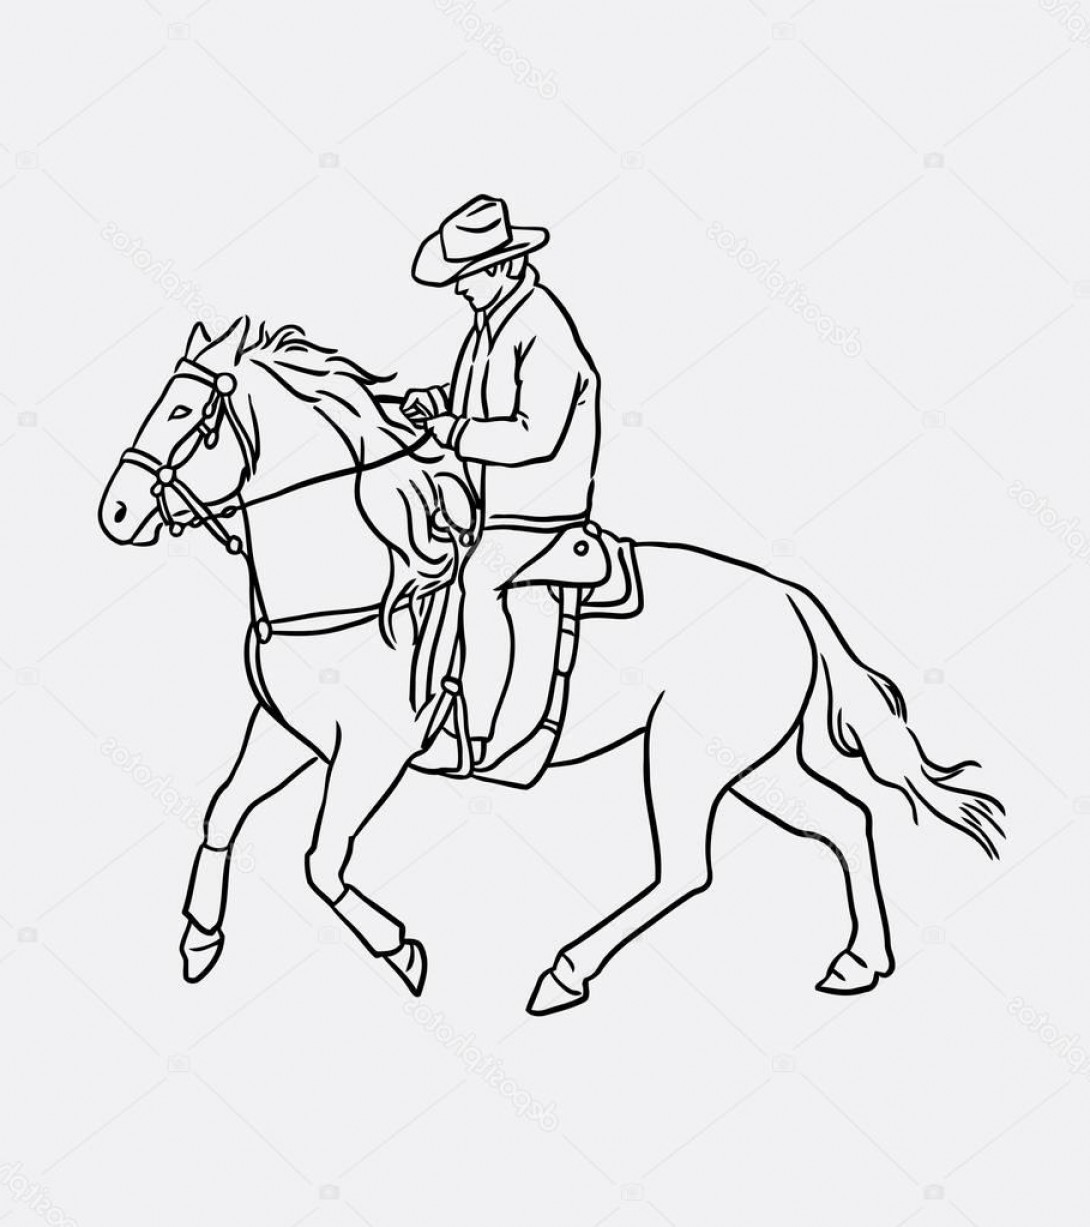 Cowboys Line Drawings Vector: Stock Illustration Cowboy Riding Horse Line Art